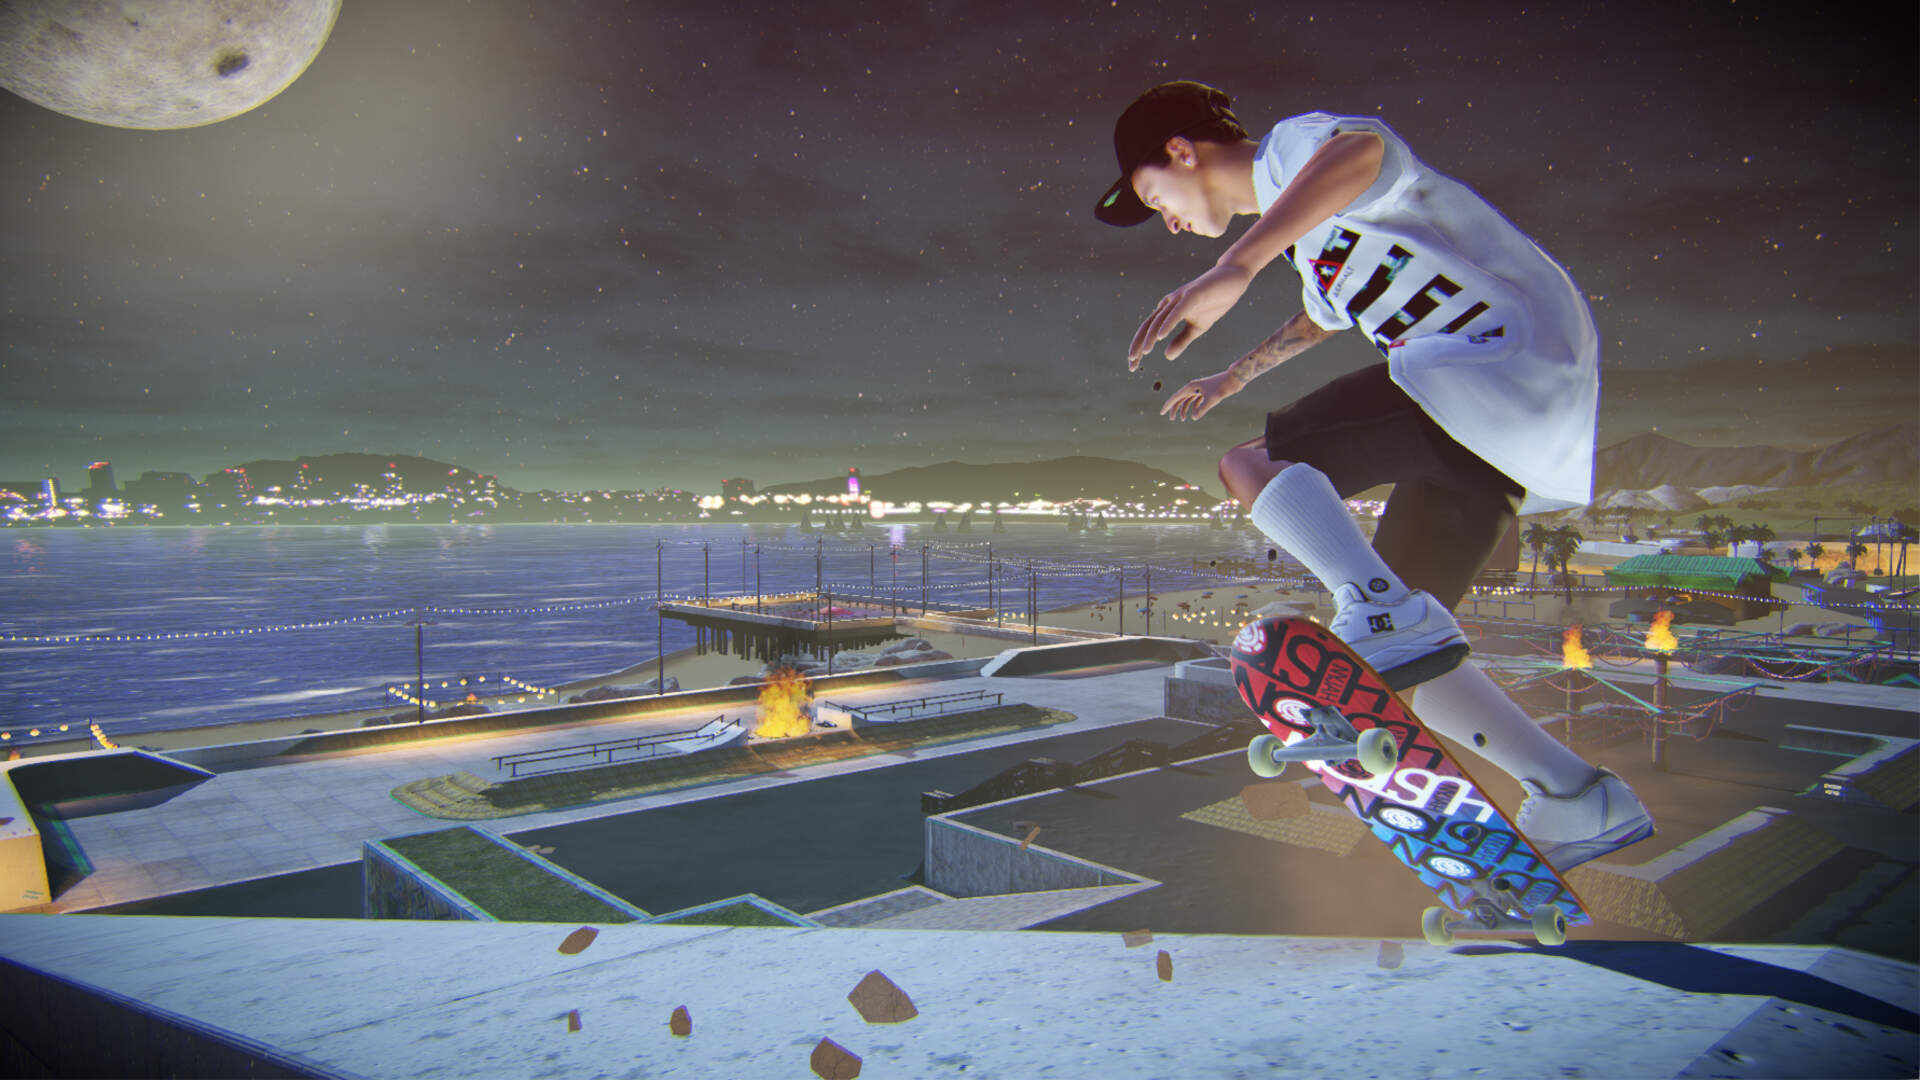 New Tony Hawk's Pro Skater Coming This Year, According to Pro Skater Jason Dill